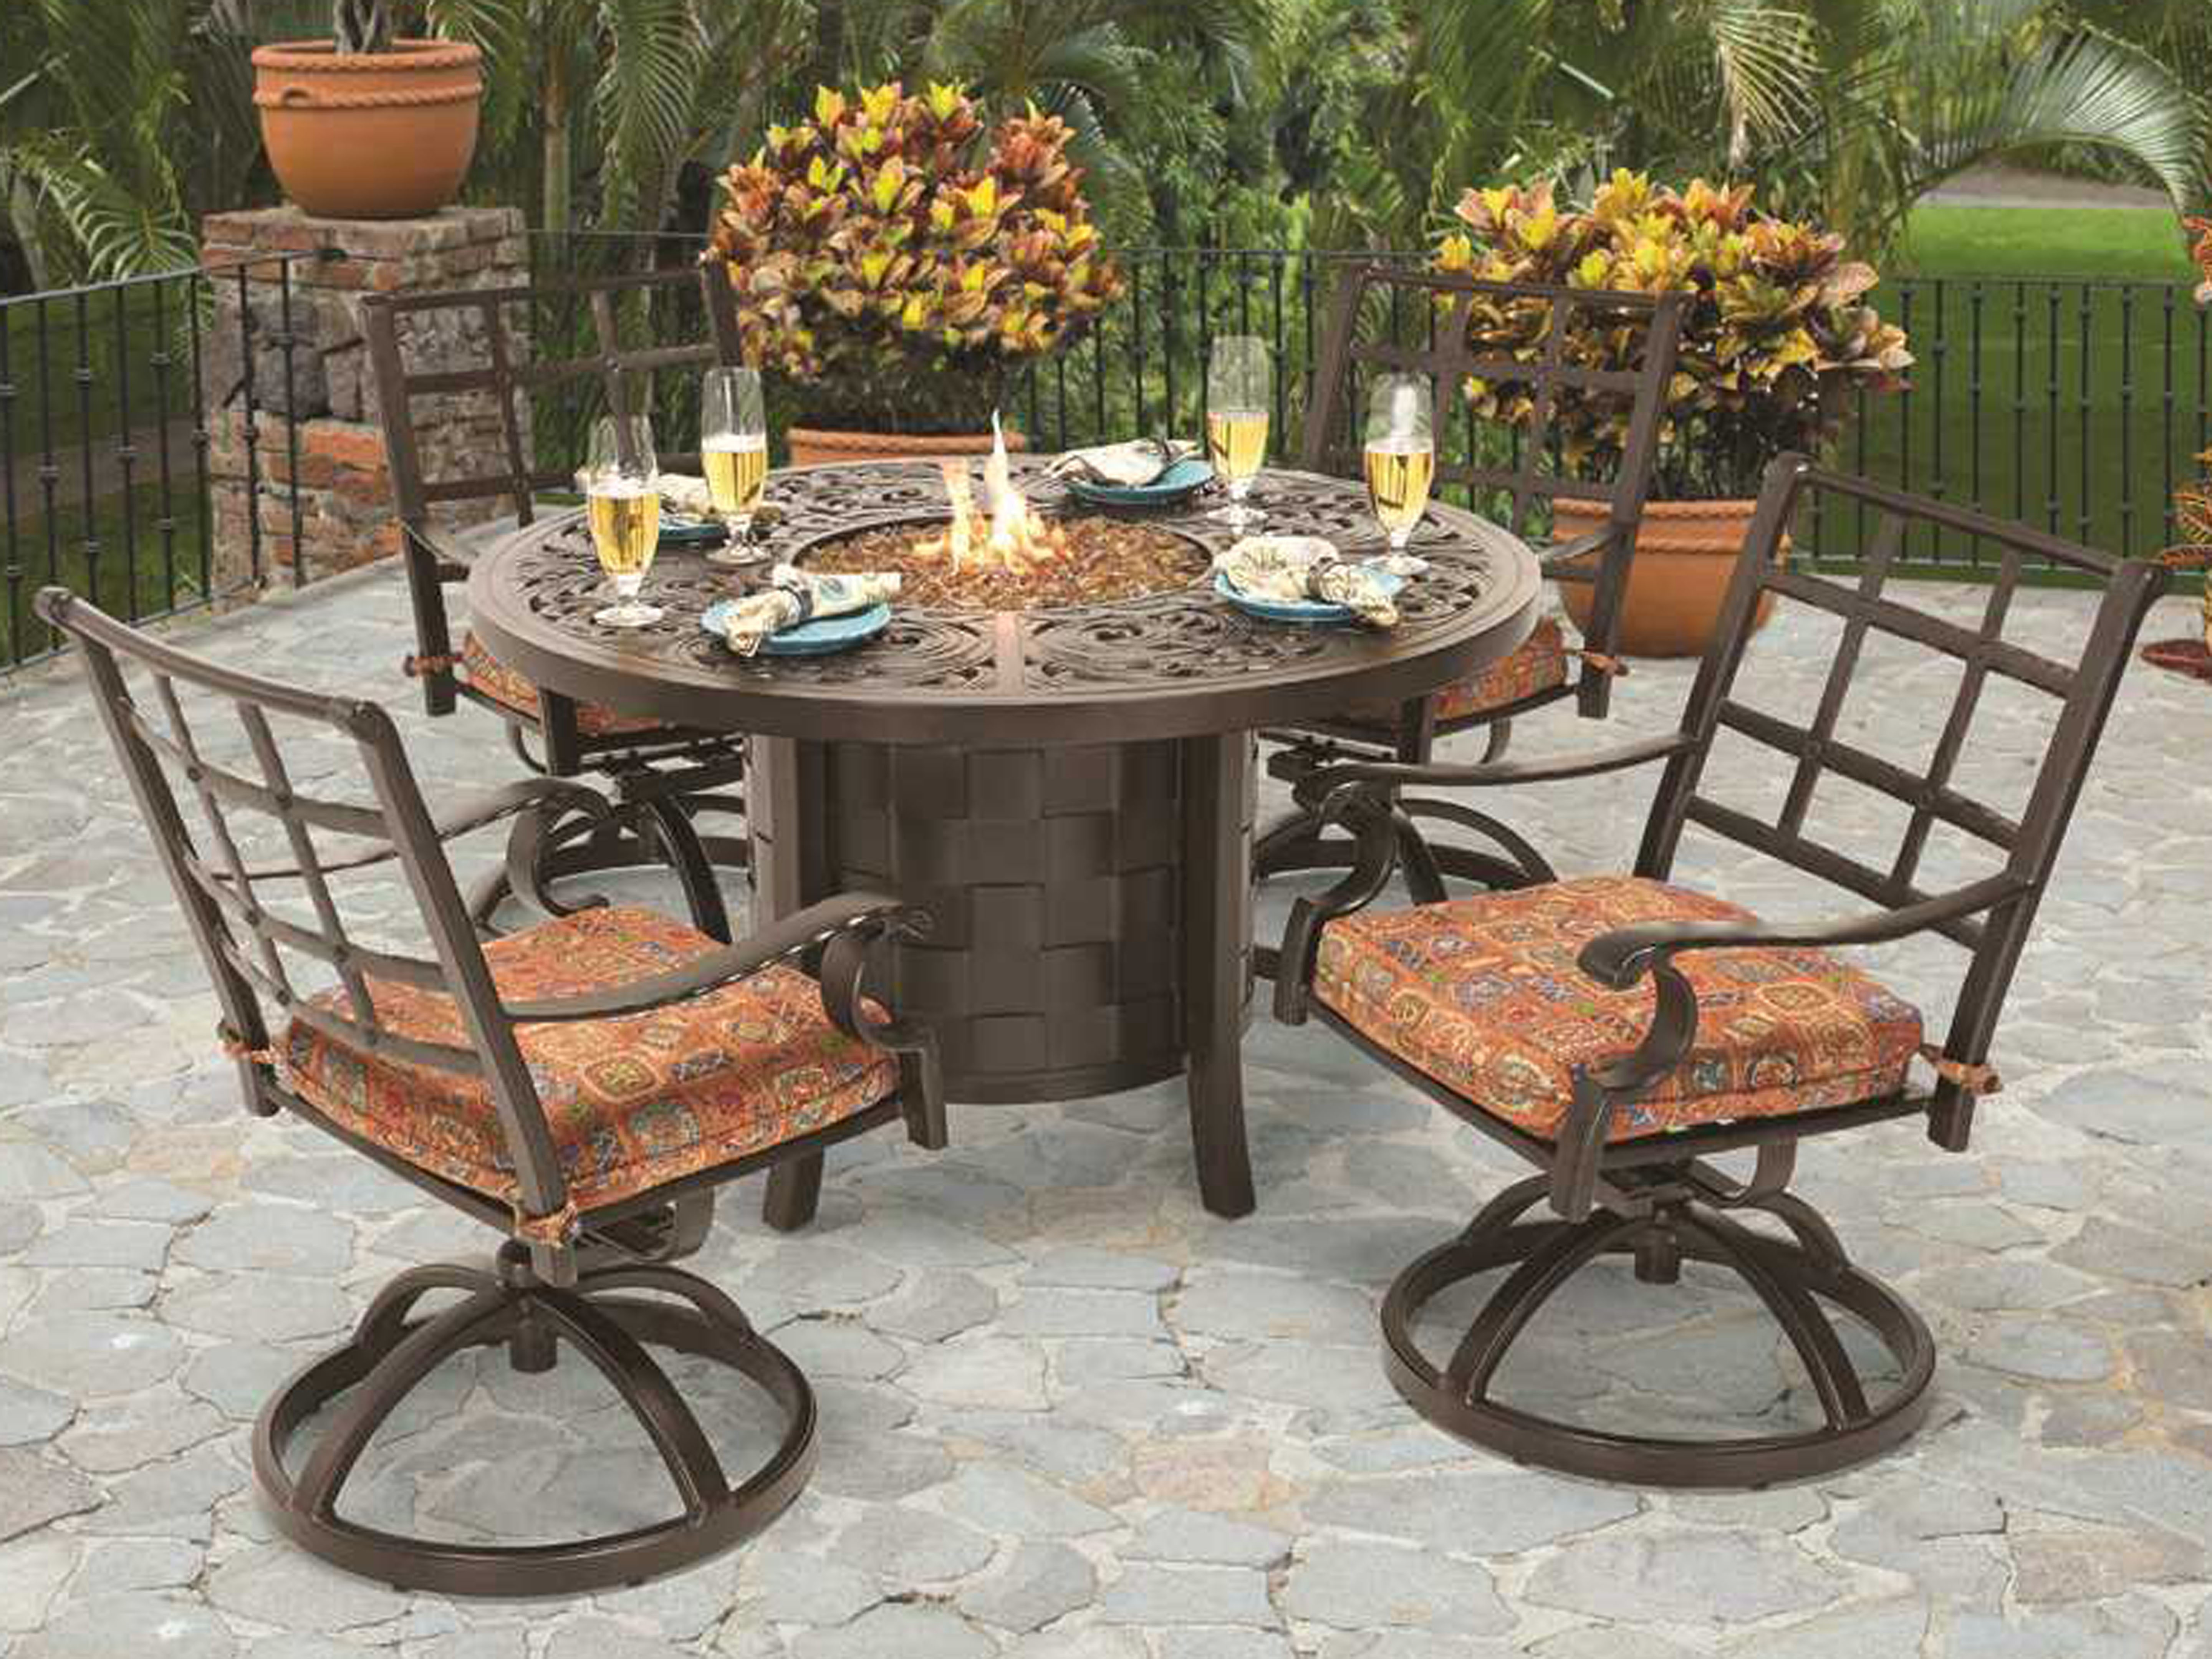 Castelle Coco Isle Cast Aluminum 49 Round Dining Table with